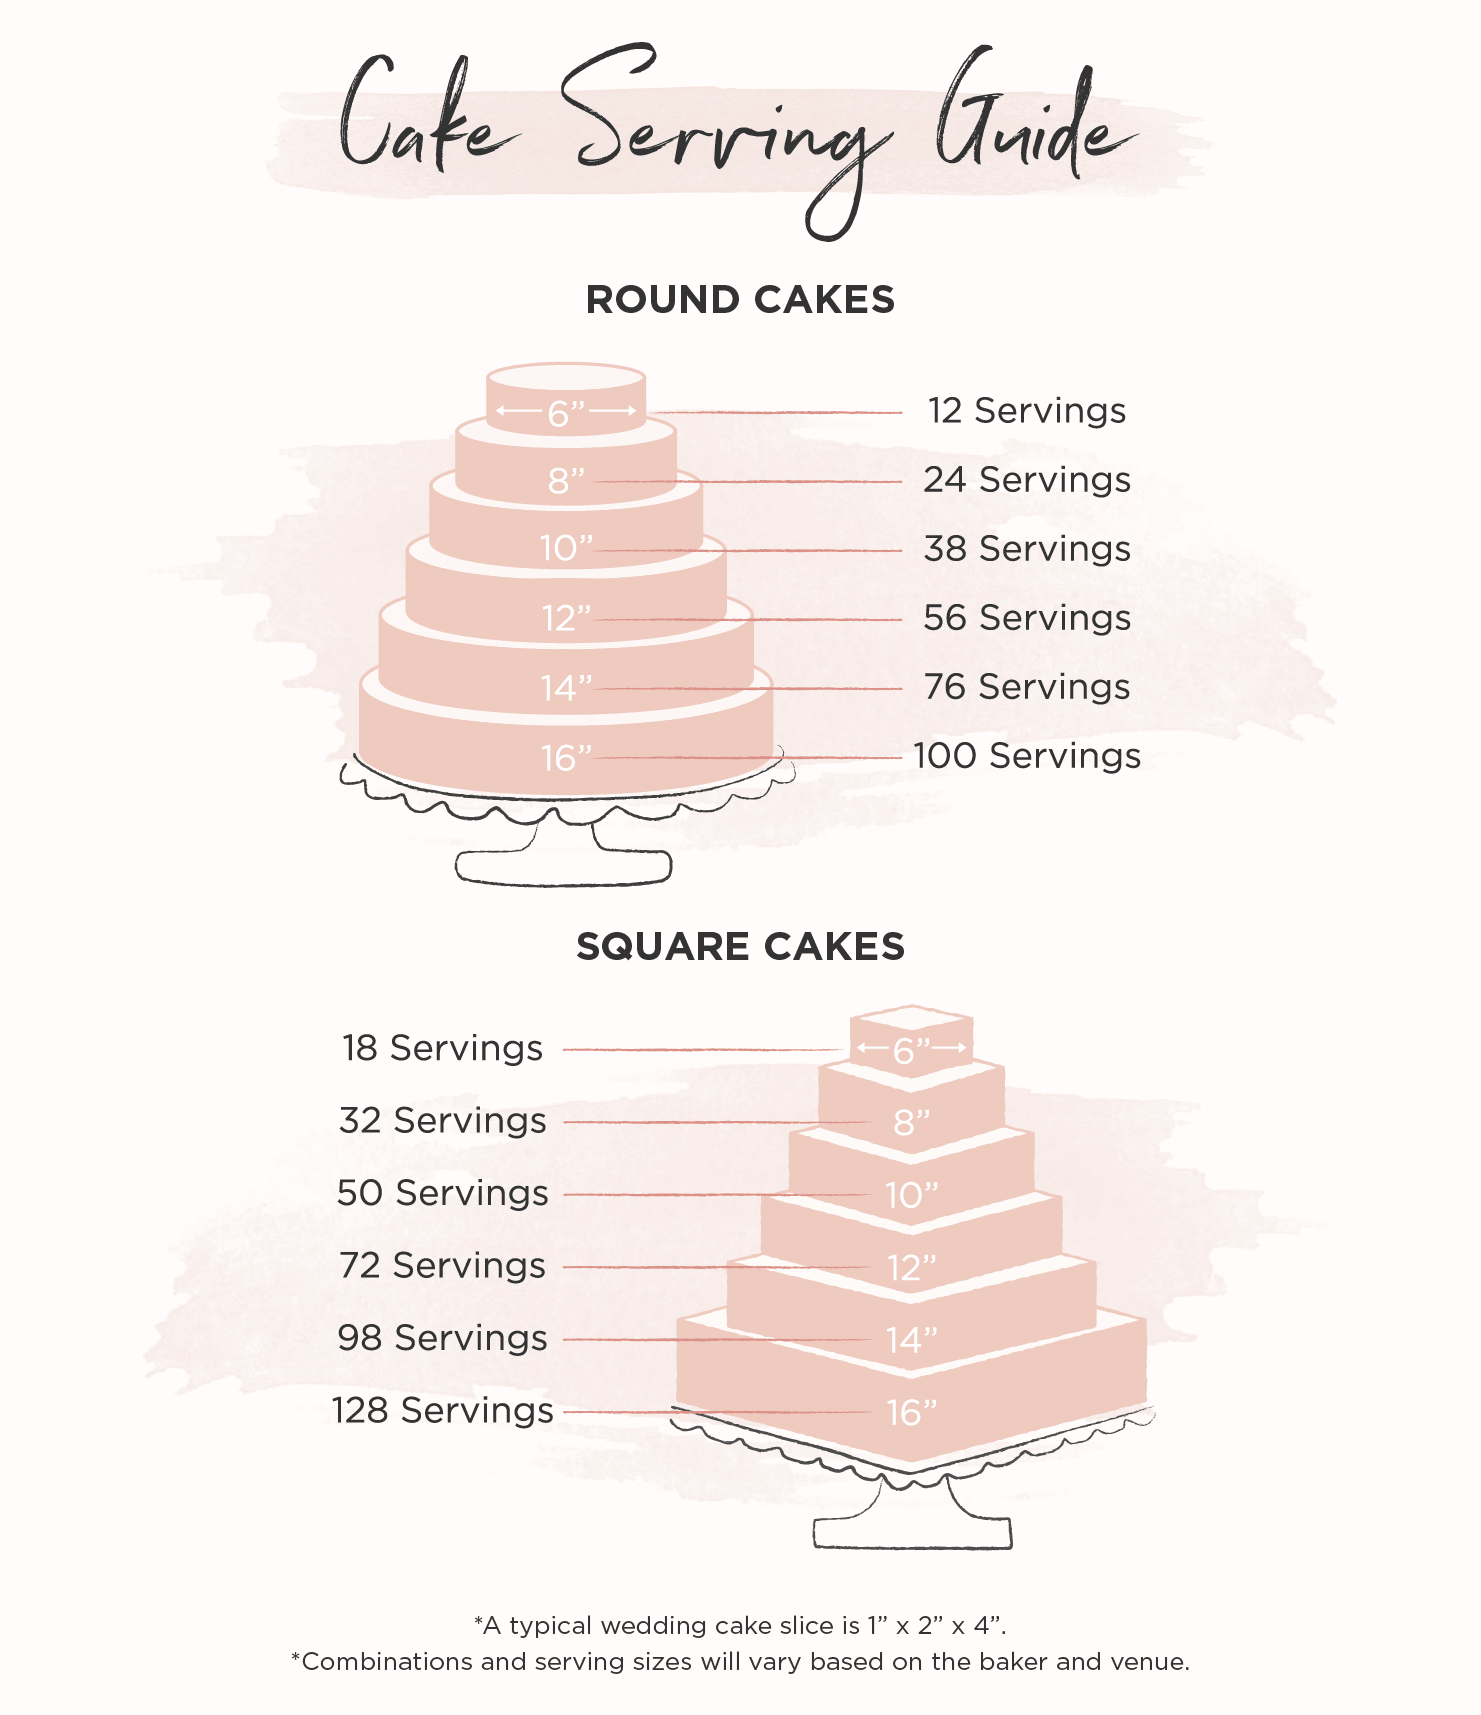 Cake serving guide chart with round and square sizes.